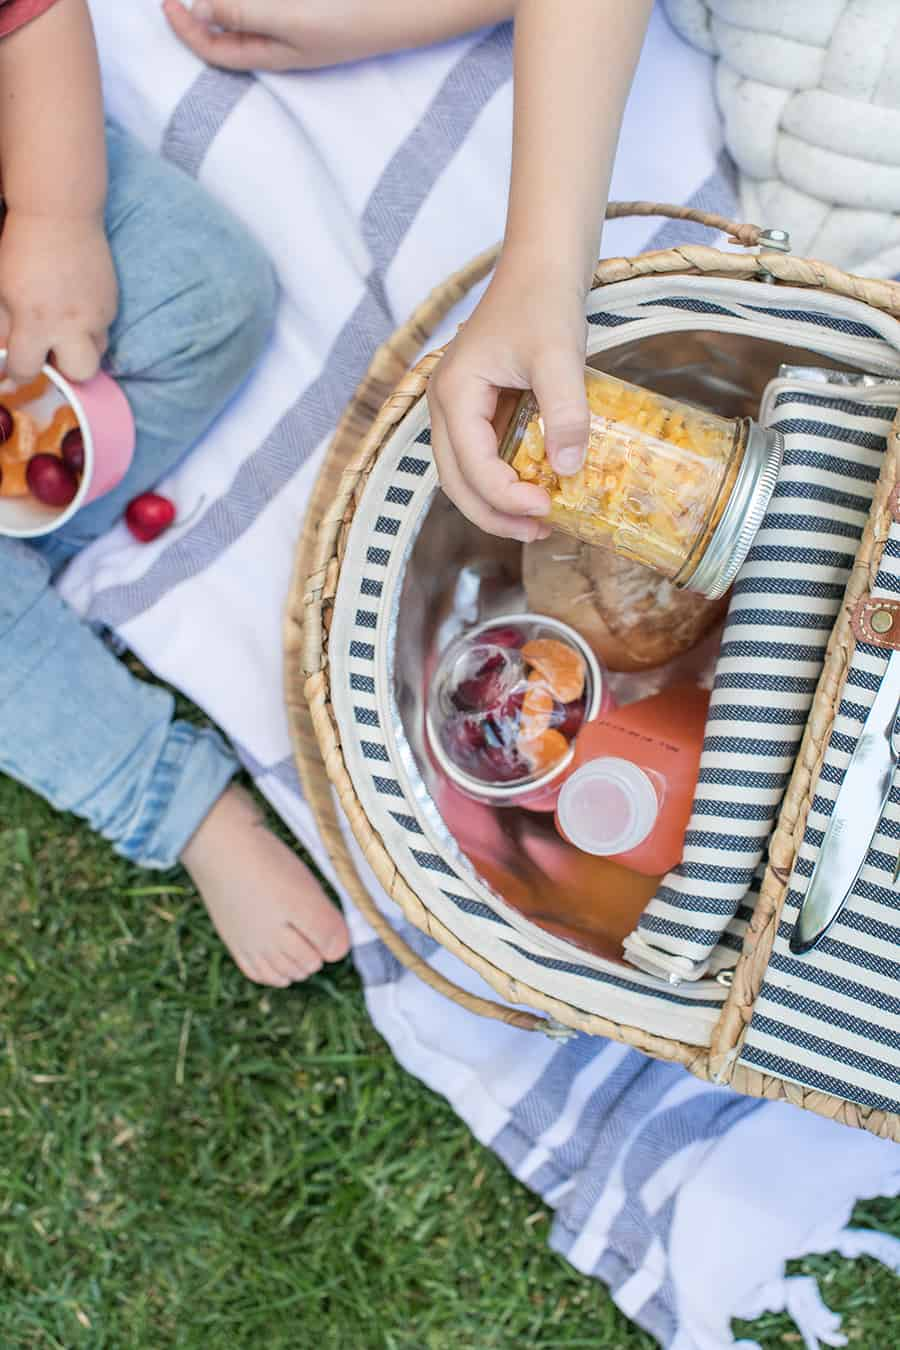 Food for kids in a picnic basket with a kids hand grabbing mac and cheese in a glass jar.